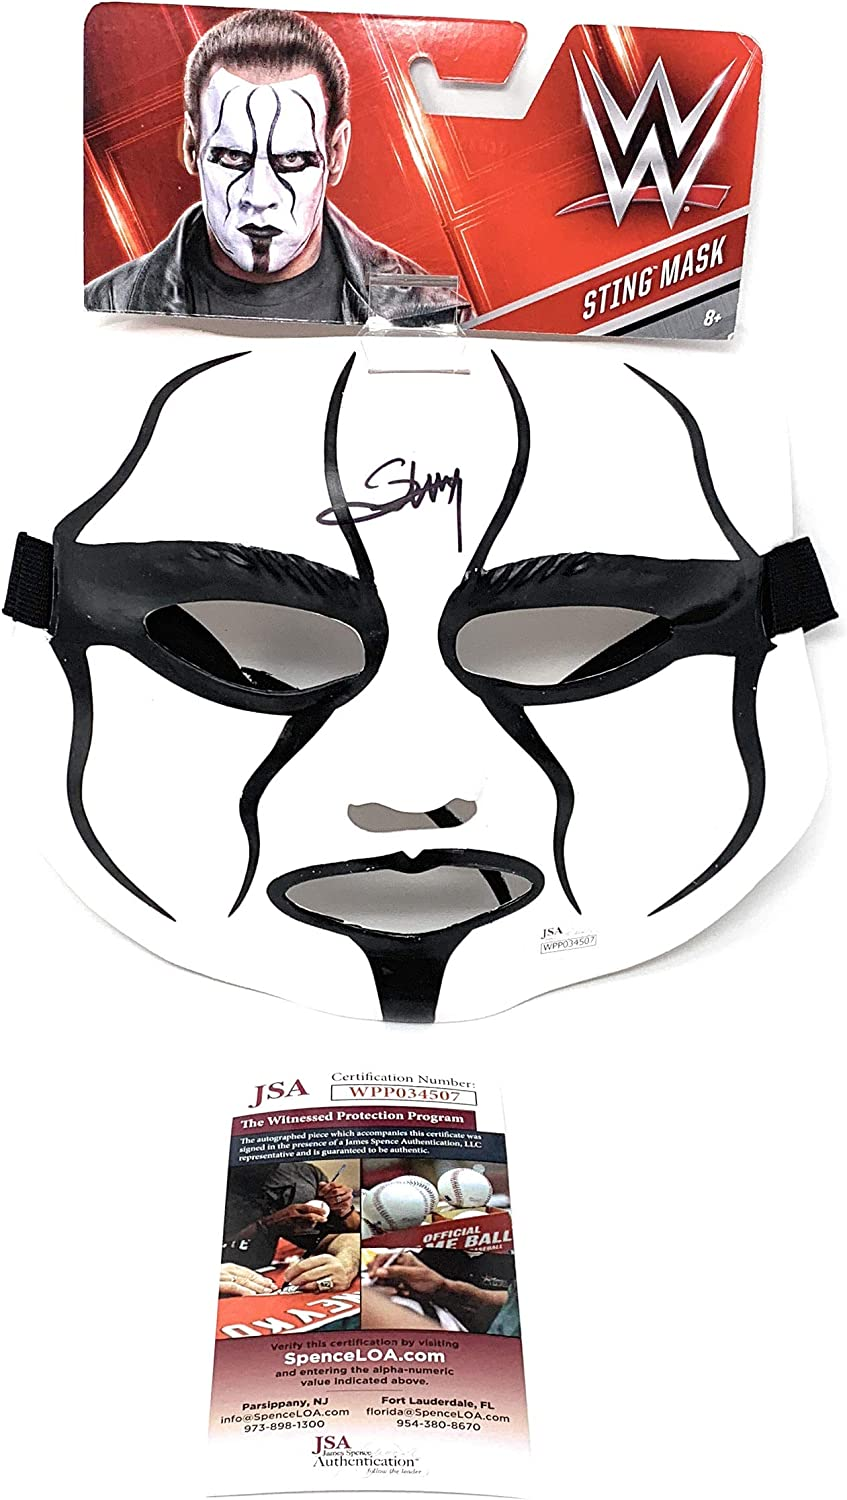 PSA//DNA Certified Autographed Wrestling Miscellaneous Items Sting Signed Official Plastic Toy Mask COA WWE TNA WCW Wrestling Autod